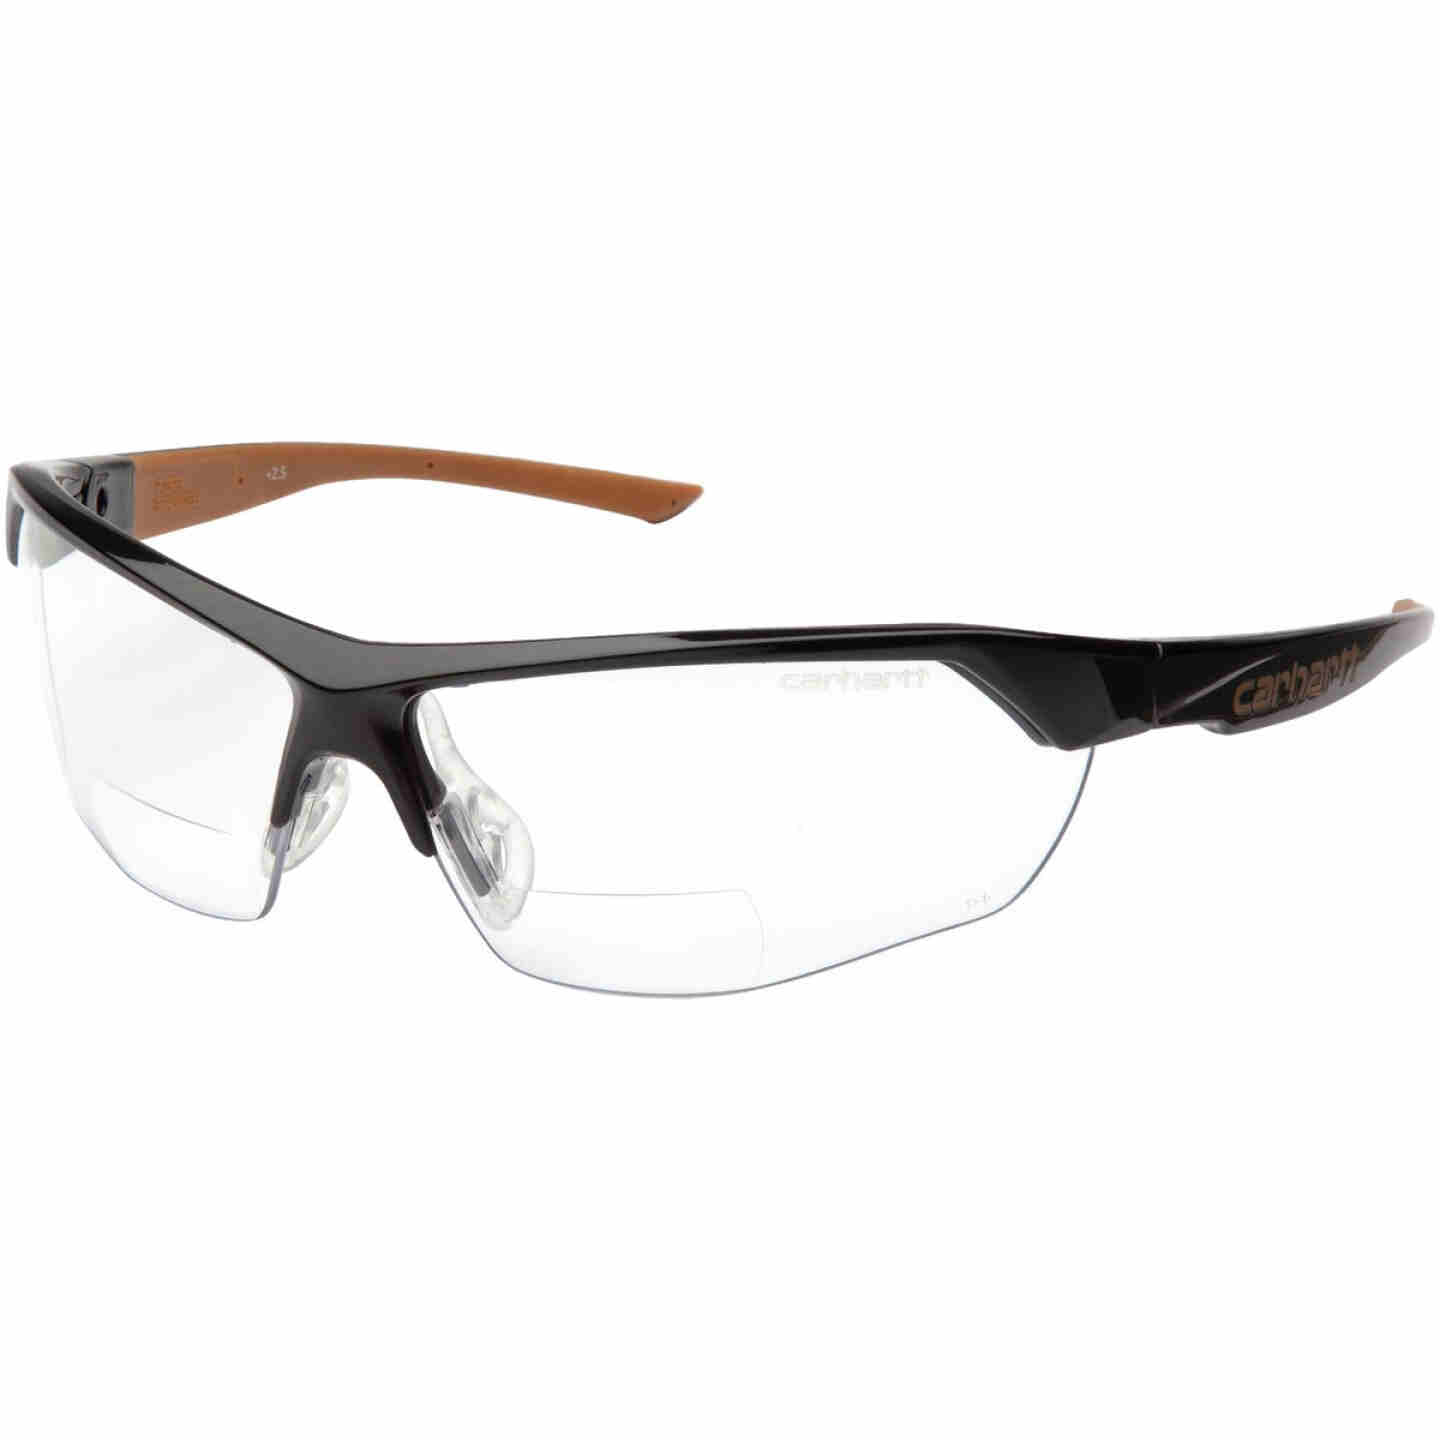 Carhartt Braswell Black Frame Reader Safety Glasses with Clear Anti-Fog Lenses, 1.5 Diopter Image 1